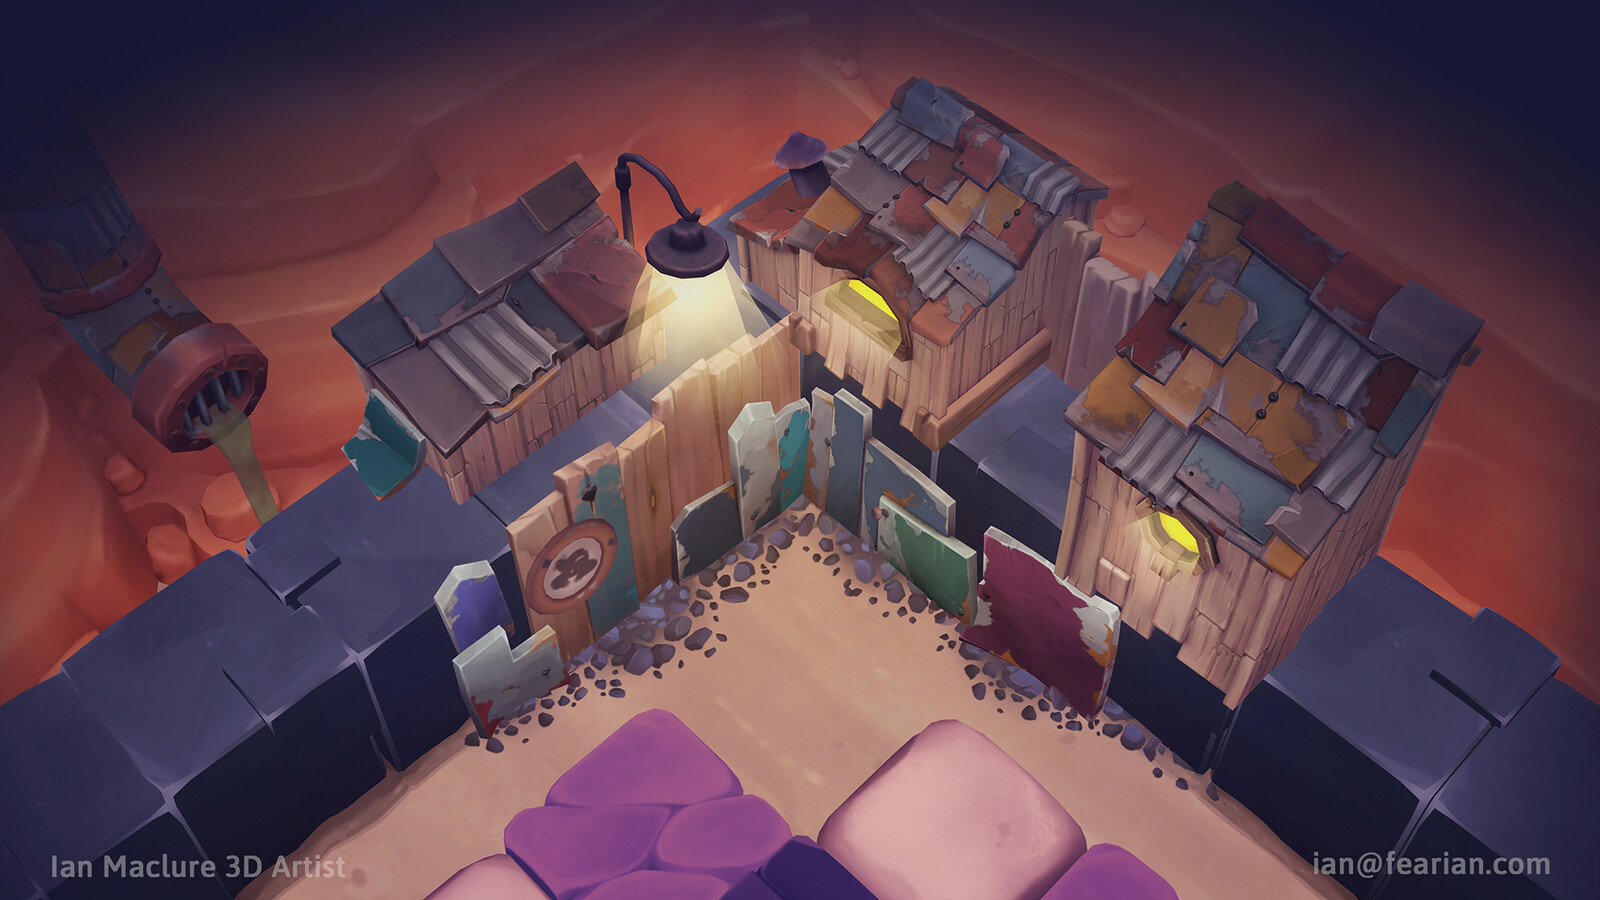 Some Boss assets in a level. Contains art by myself, Robert Procter, Sarah Wright, and shaders by Ryan Webb